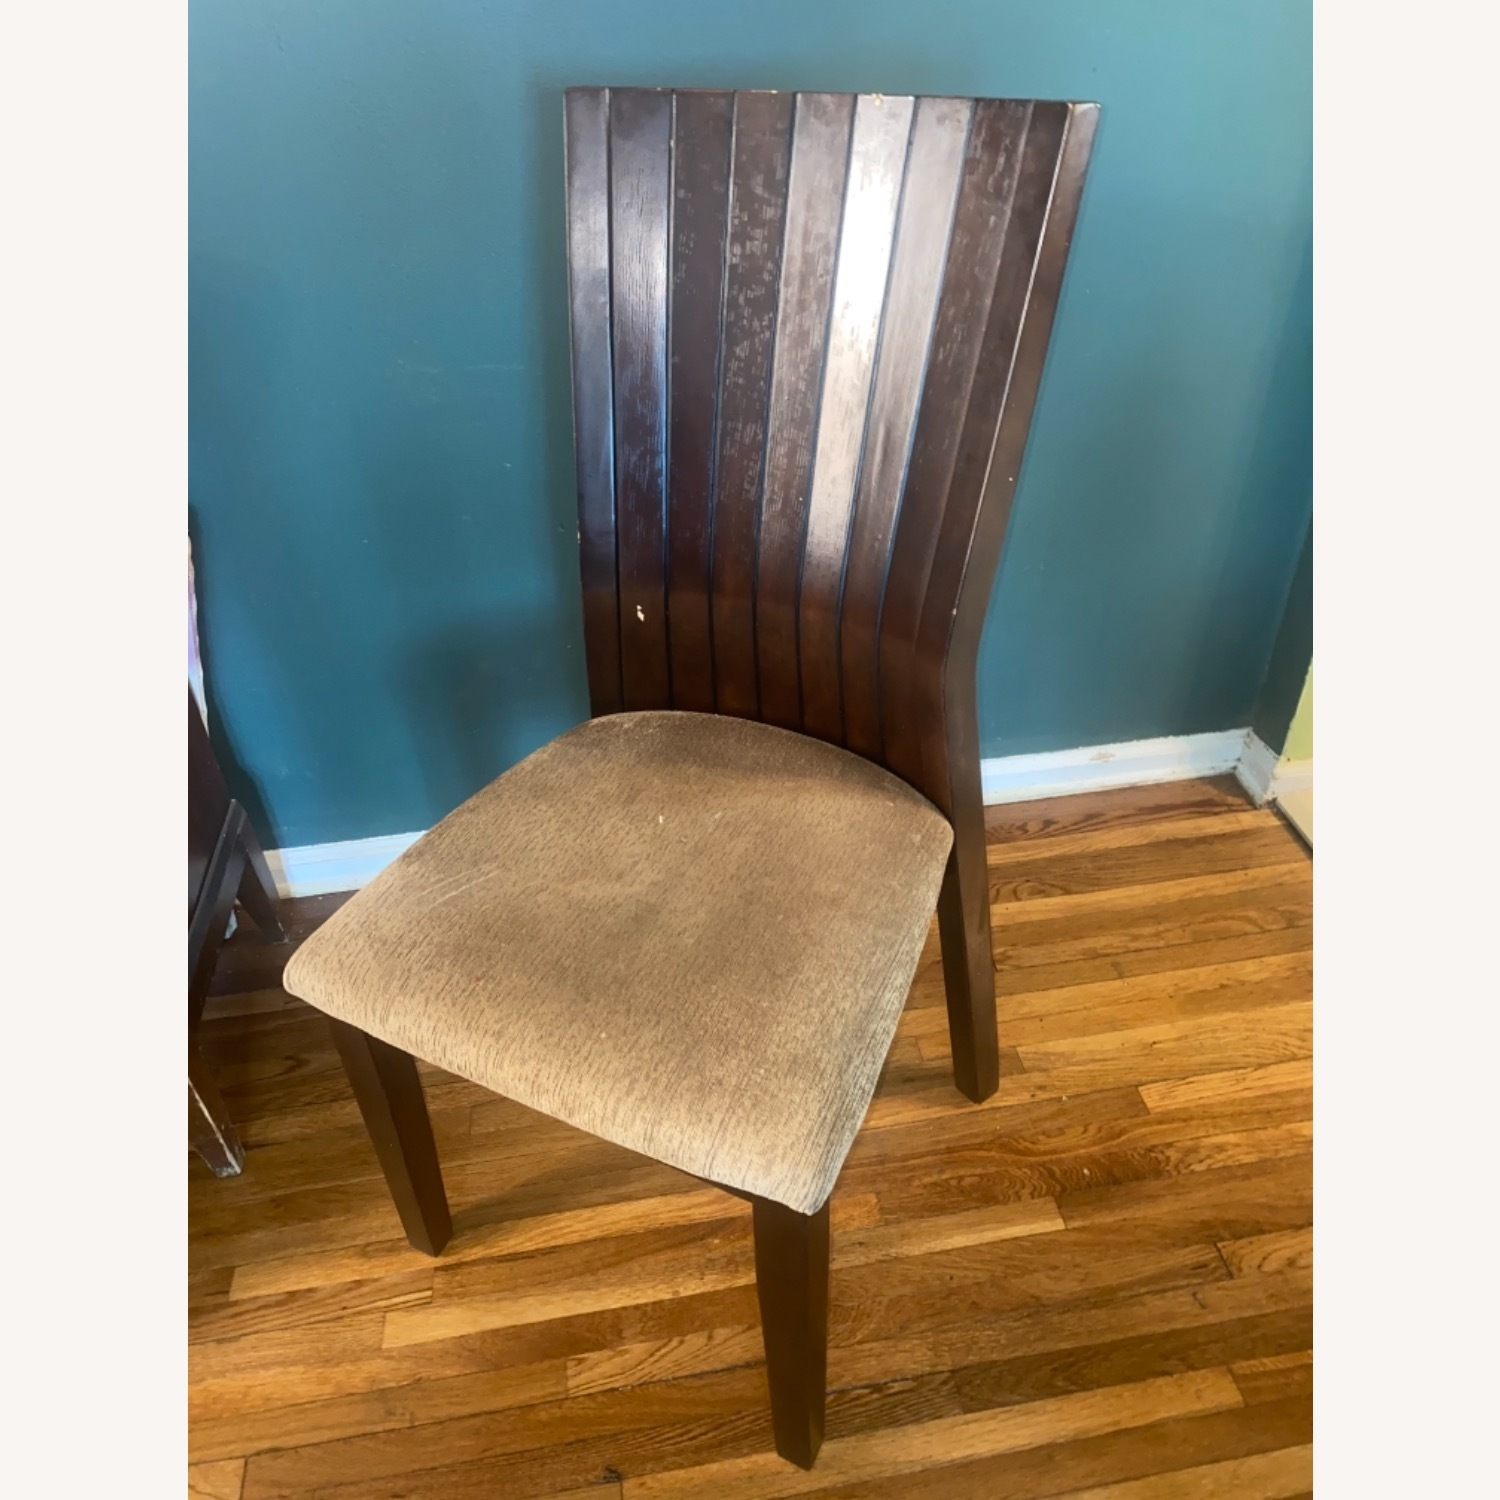 6 New Dining Chairs from Furniture of America - image-3